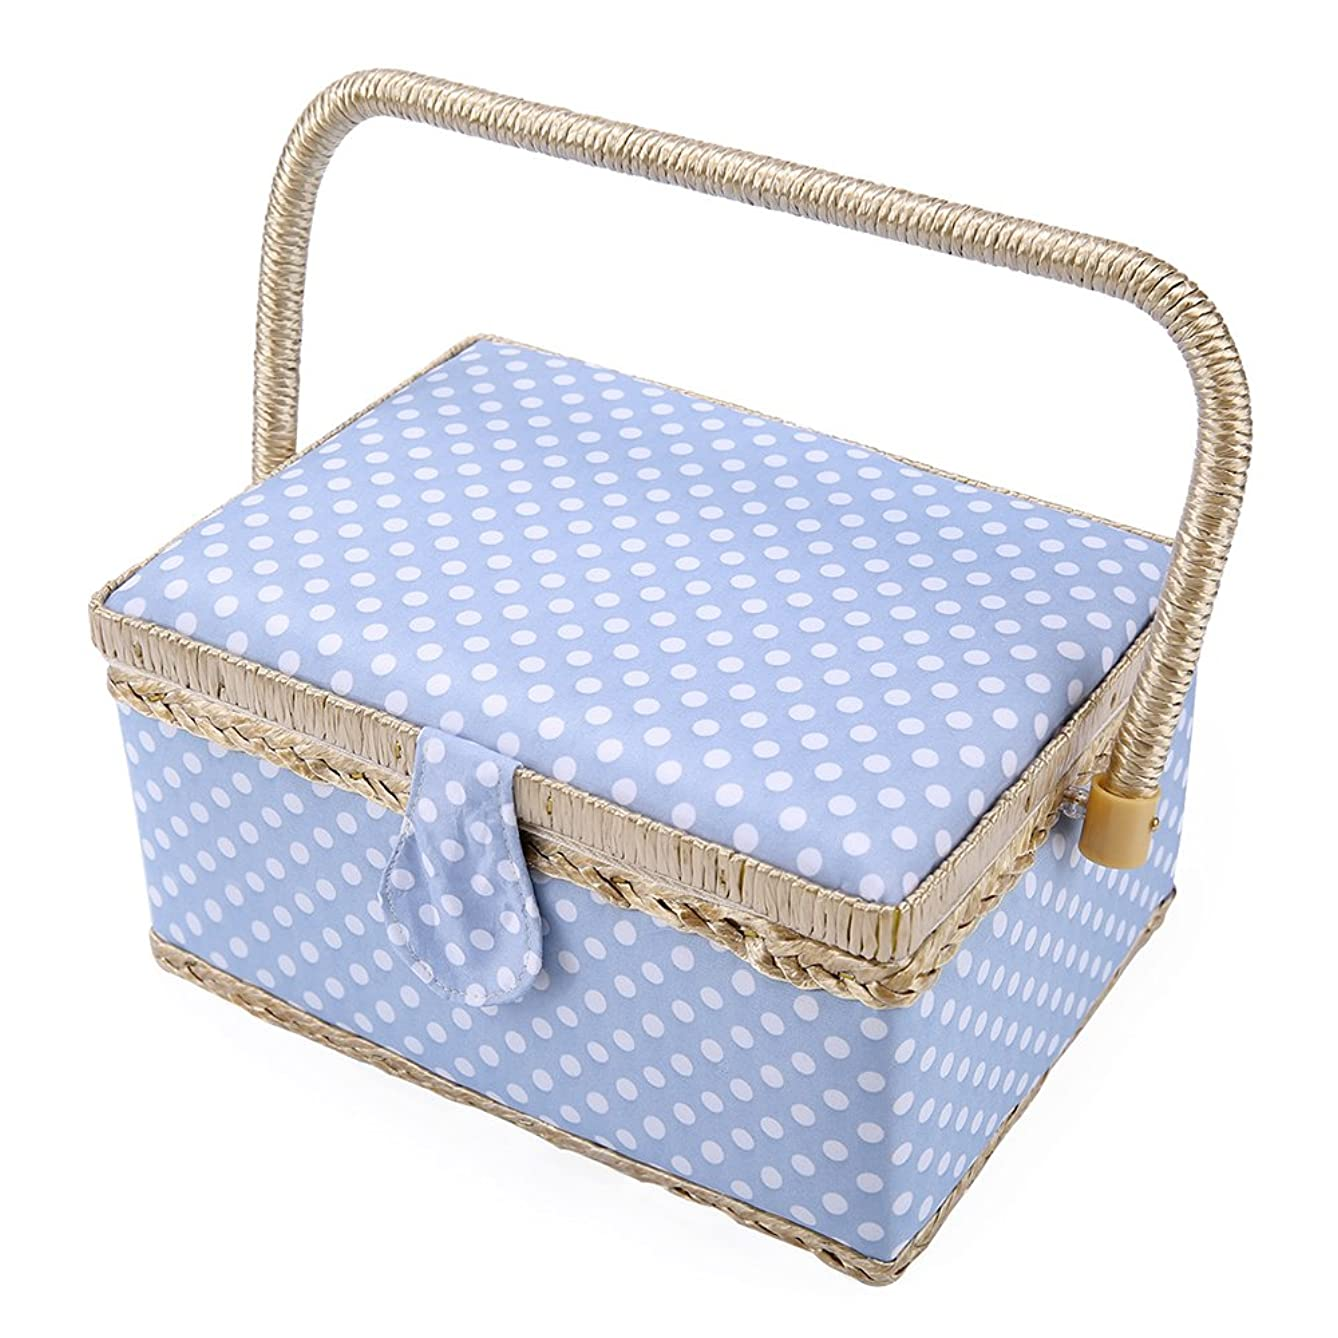 SAXTX Classic Polka Dot Medium Sewing Basket with Tray - Include 31 Pcs Sewing Kit Accessories | Blue Wooden Storage Organizer Sewing Boxes for Girls | 9.6